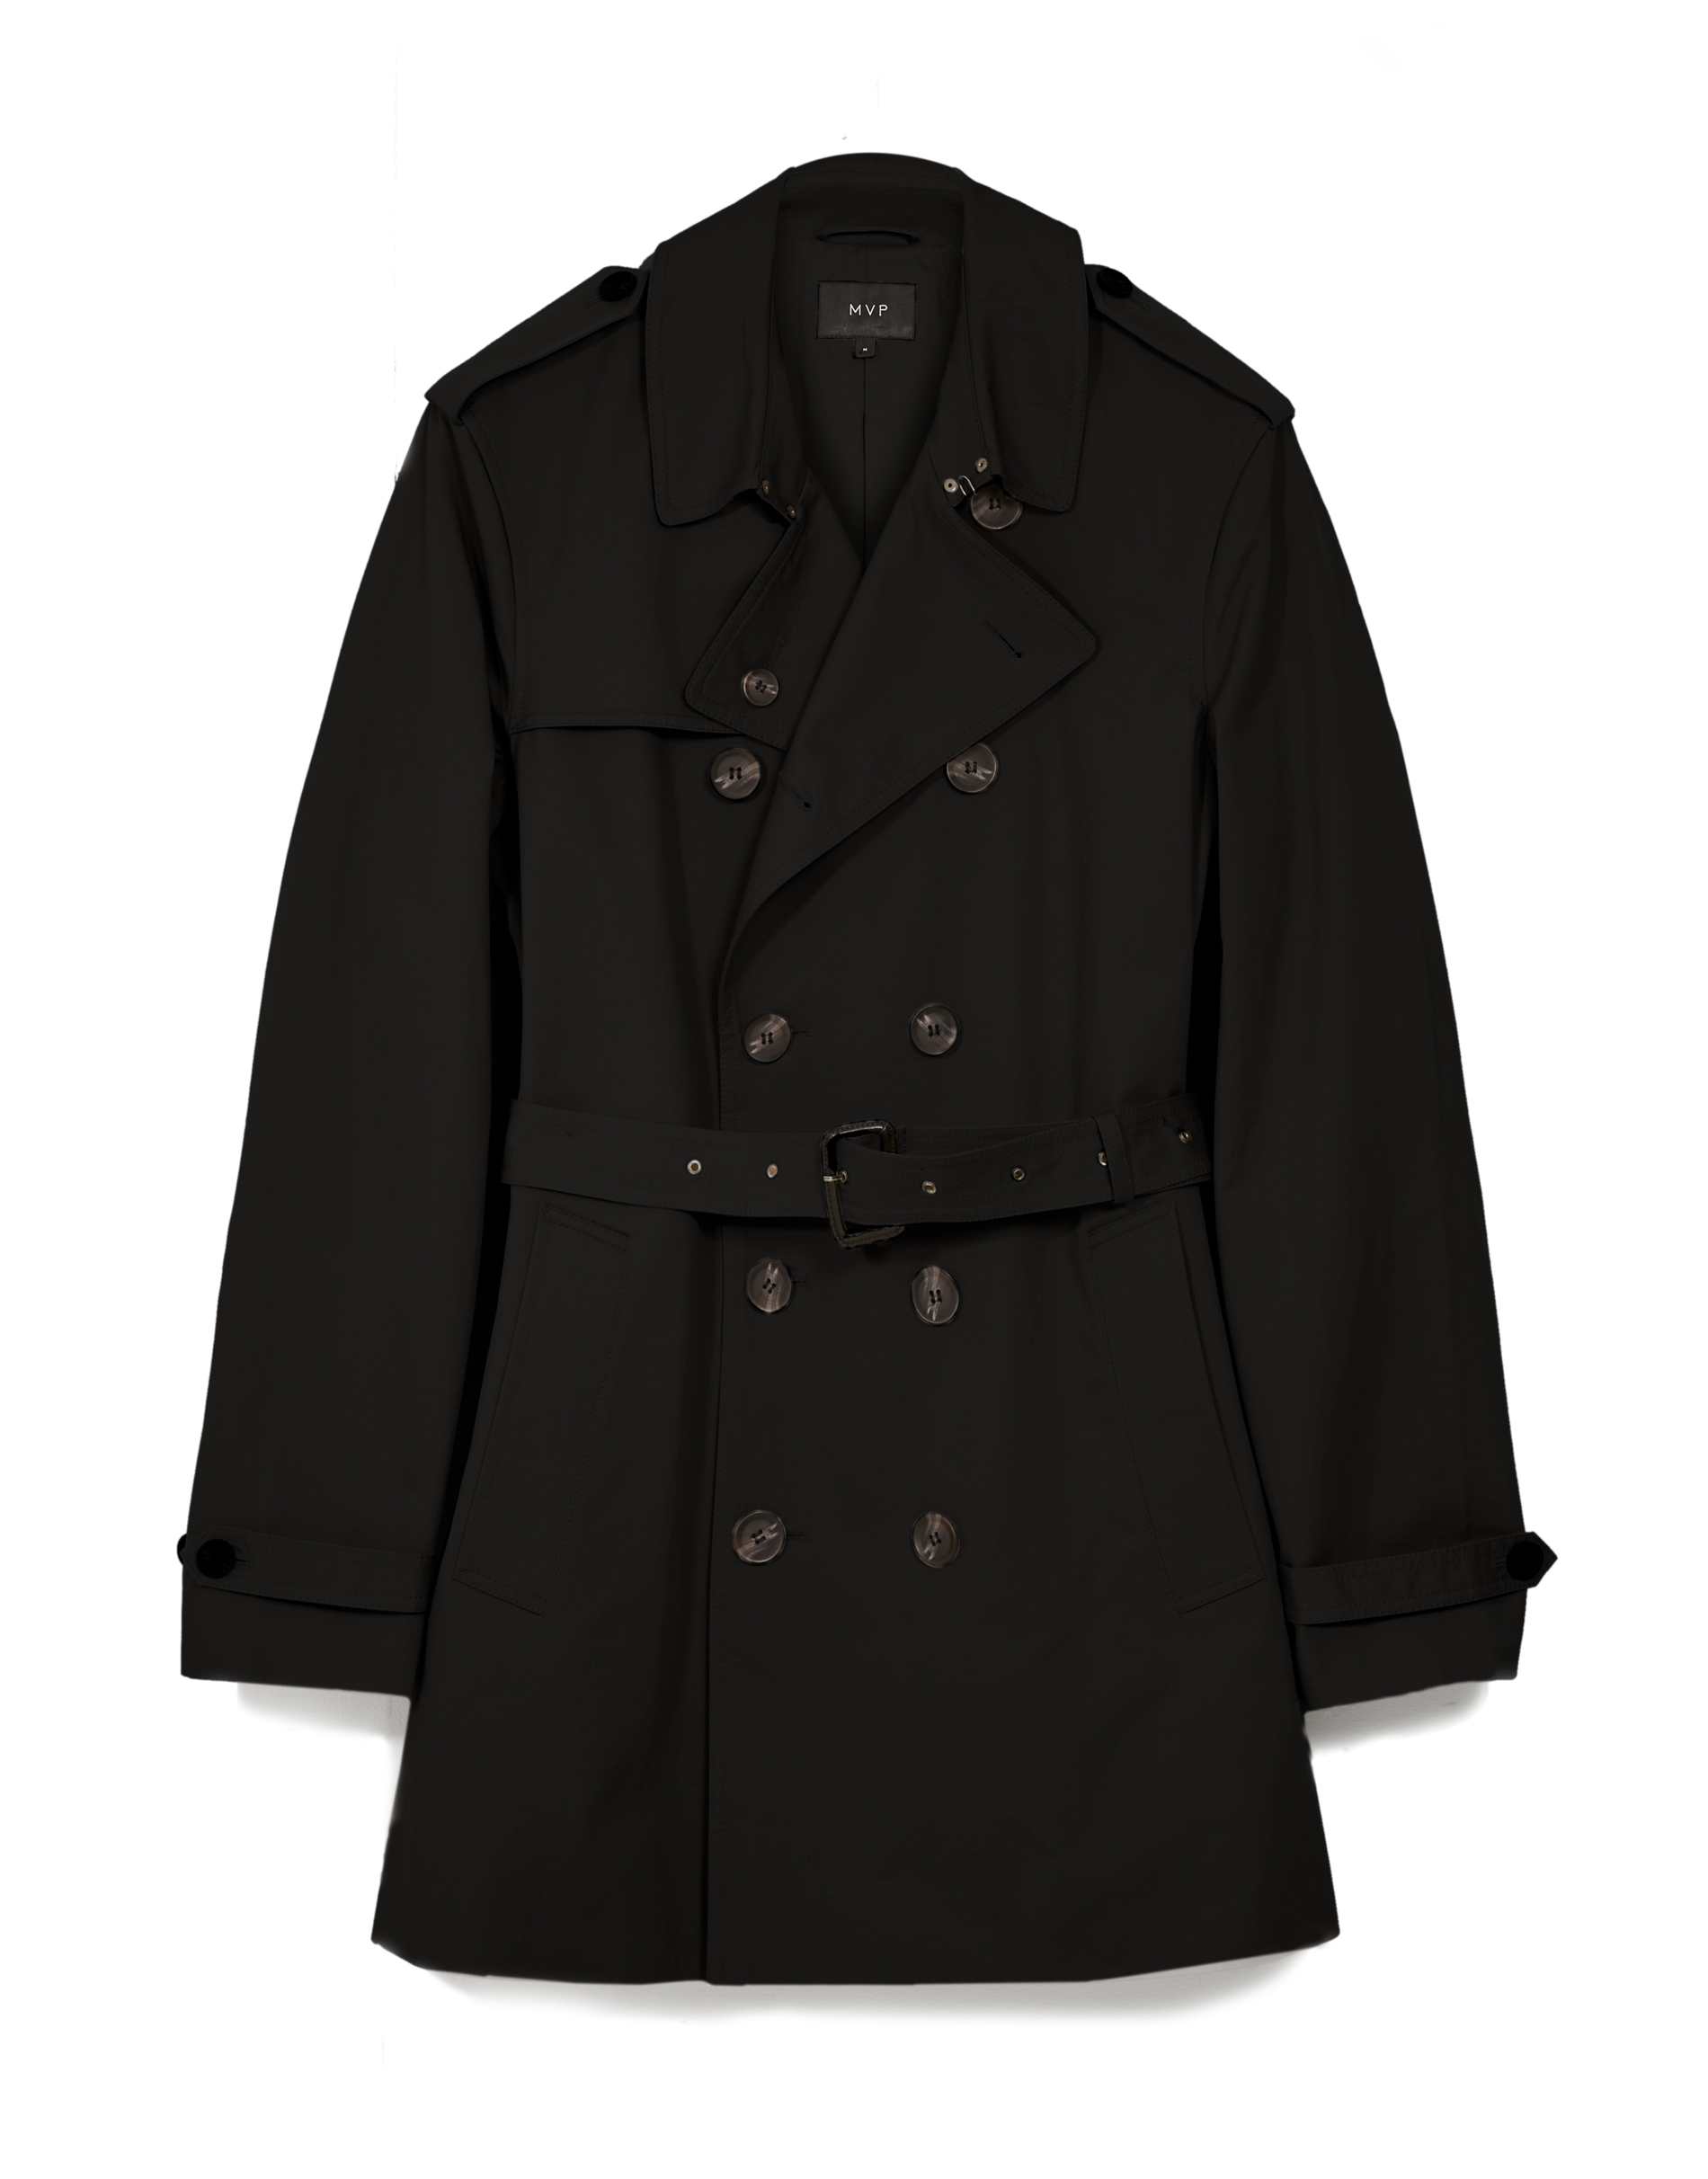 MVP BLACK Fleet Double Breasted Cotton Trench Coat